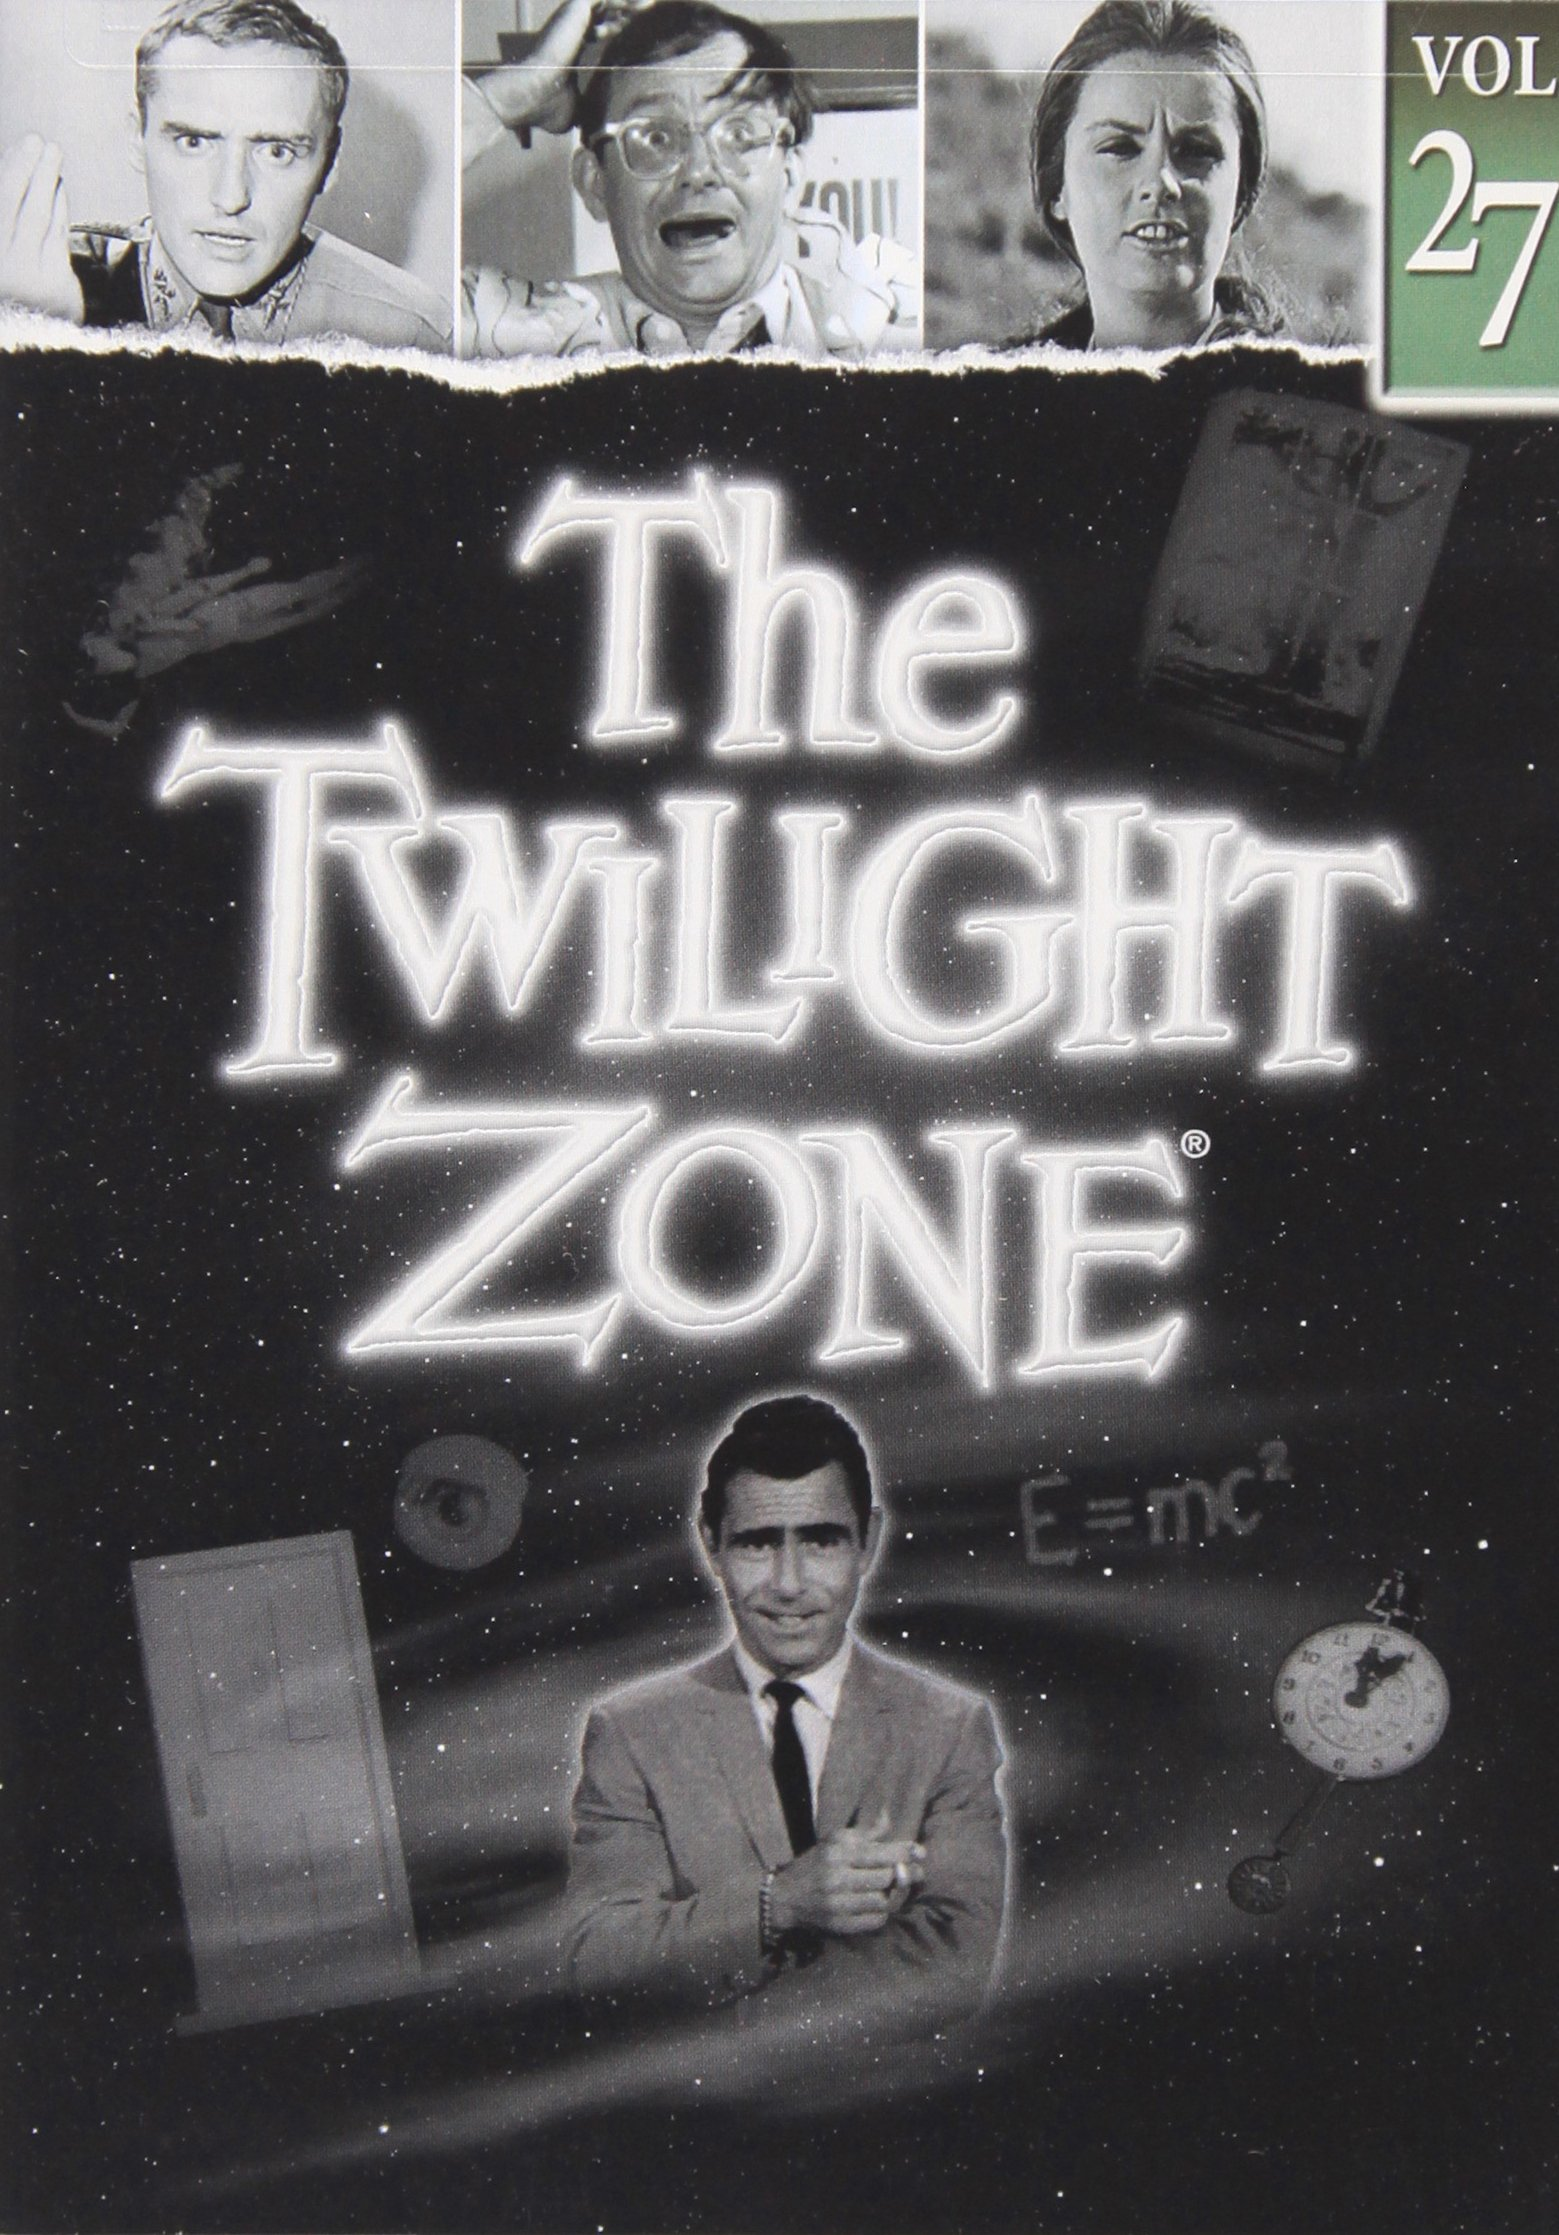 The Twilight Zone - Vol. 27